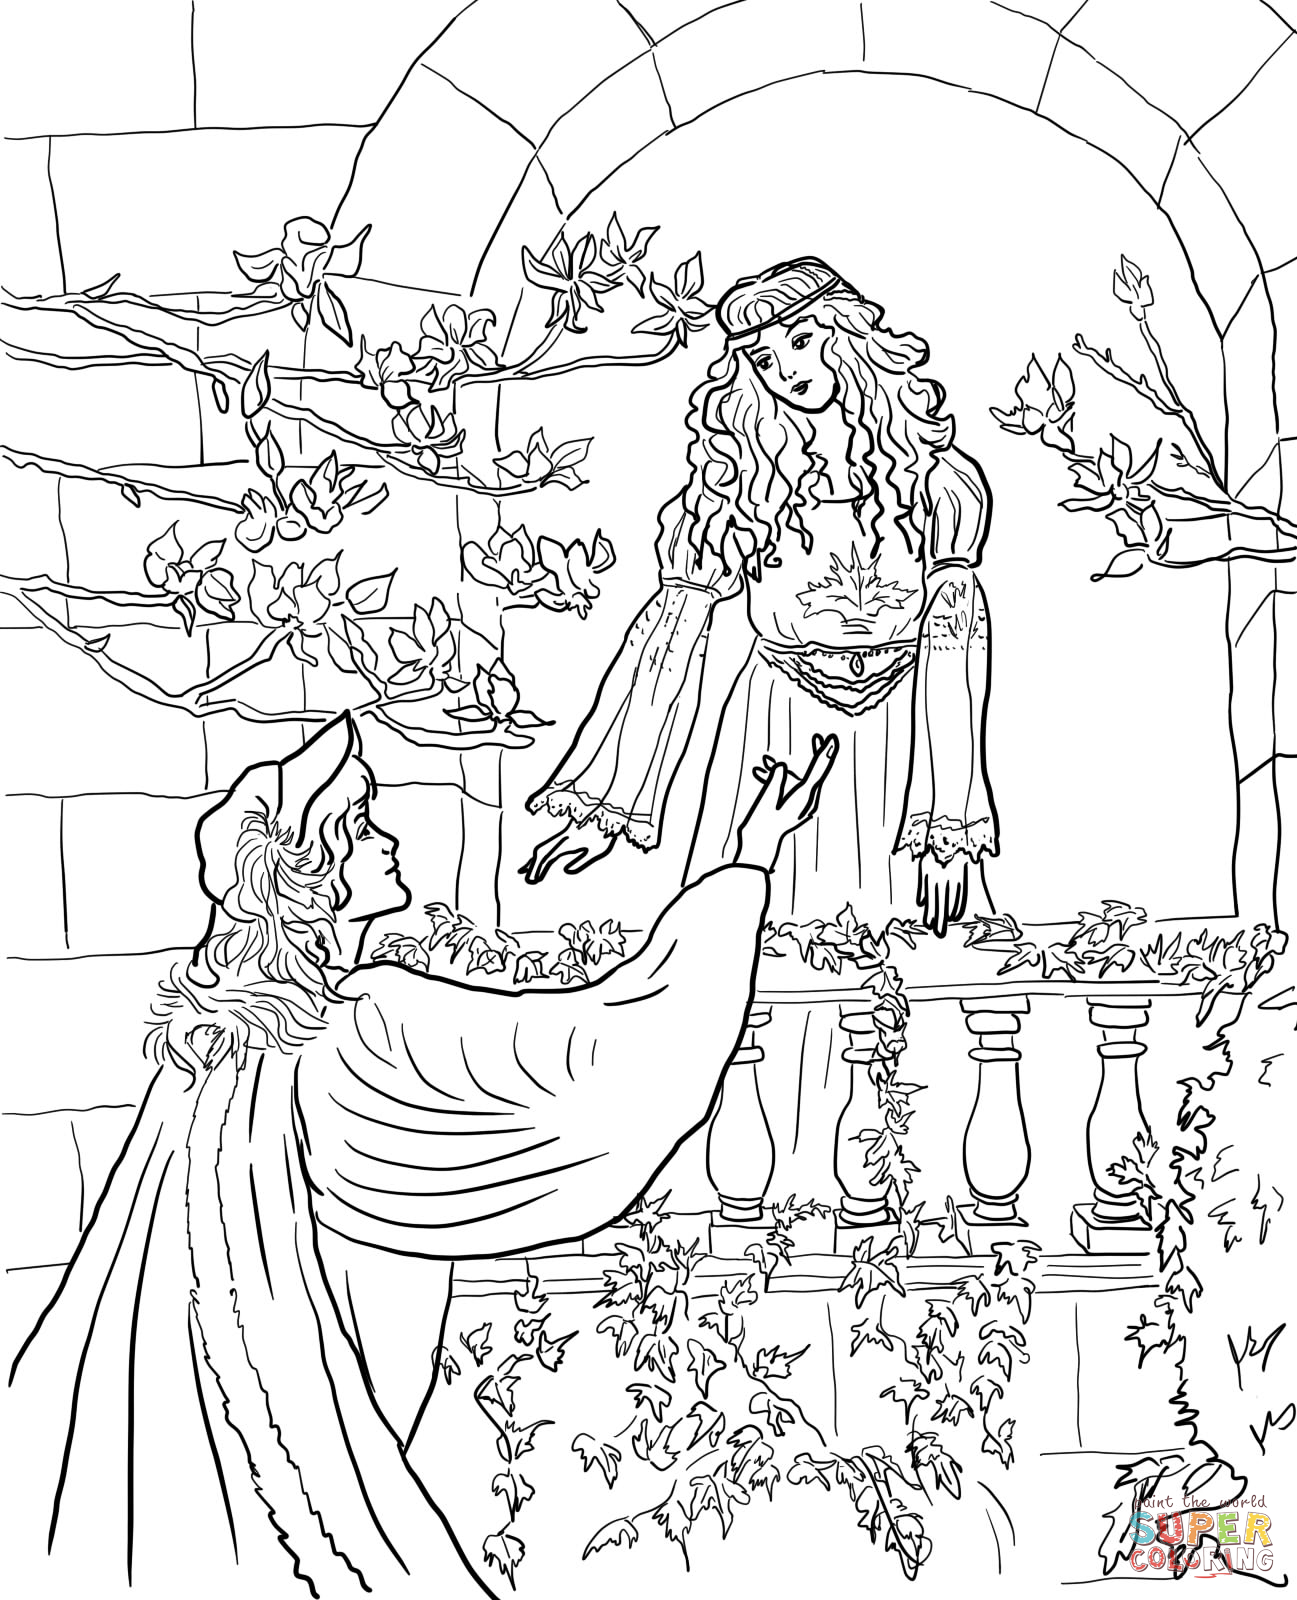 1297x1600 Romeo Say to Juliet on the Balcony Super Coloring RomeoampJuliet